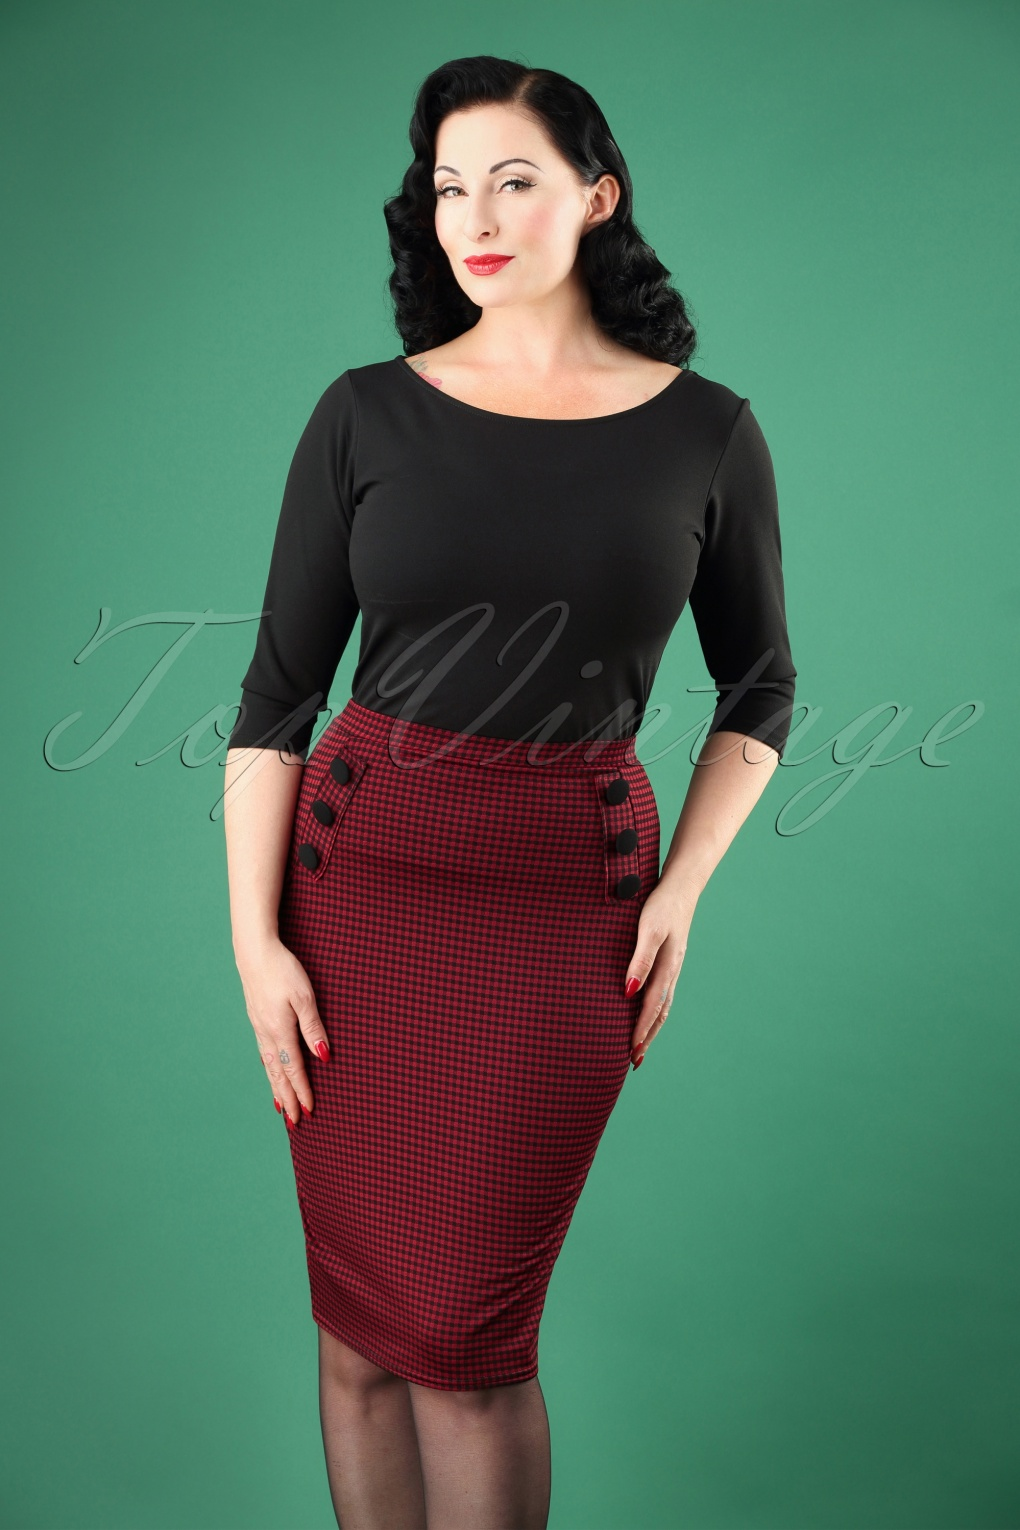 1950s Swing Skirt, Poodle Skirt, Pencil Skirts 50s Luann Gingham Pencil Skirt in Burgundy £30.71 AT vintagedancer.com